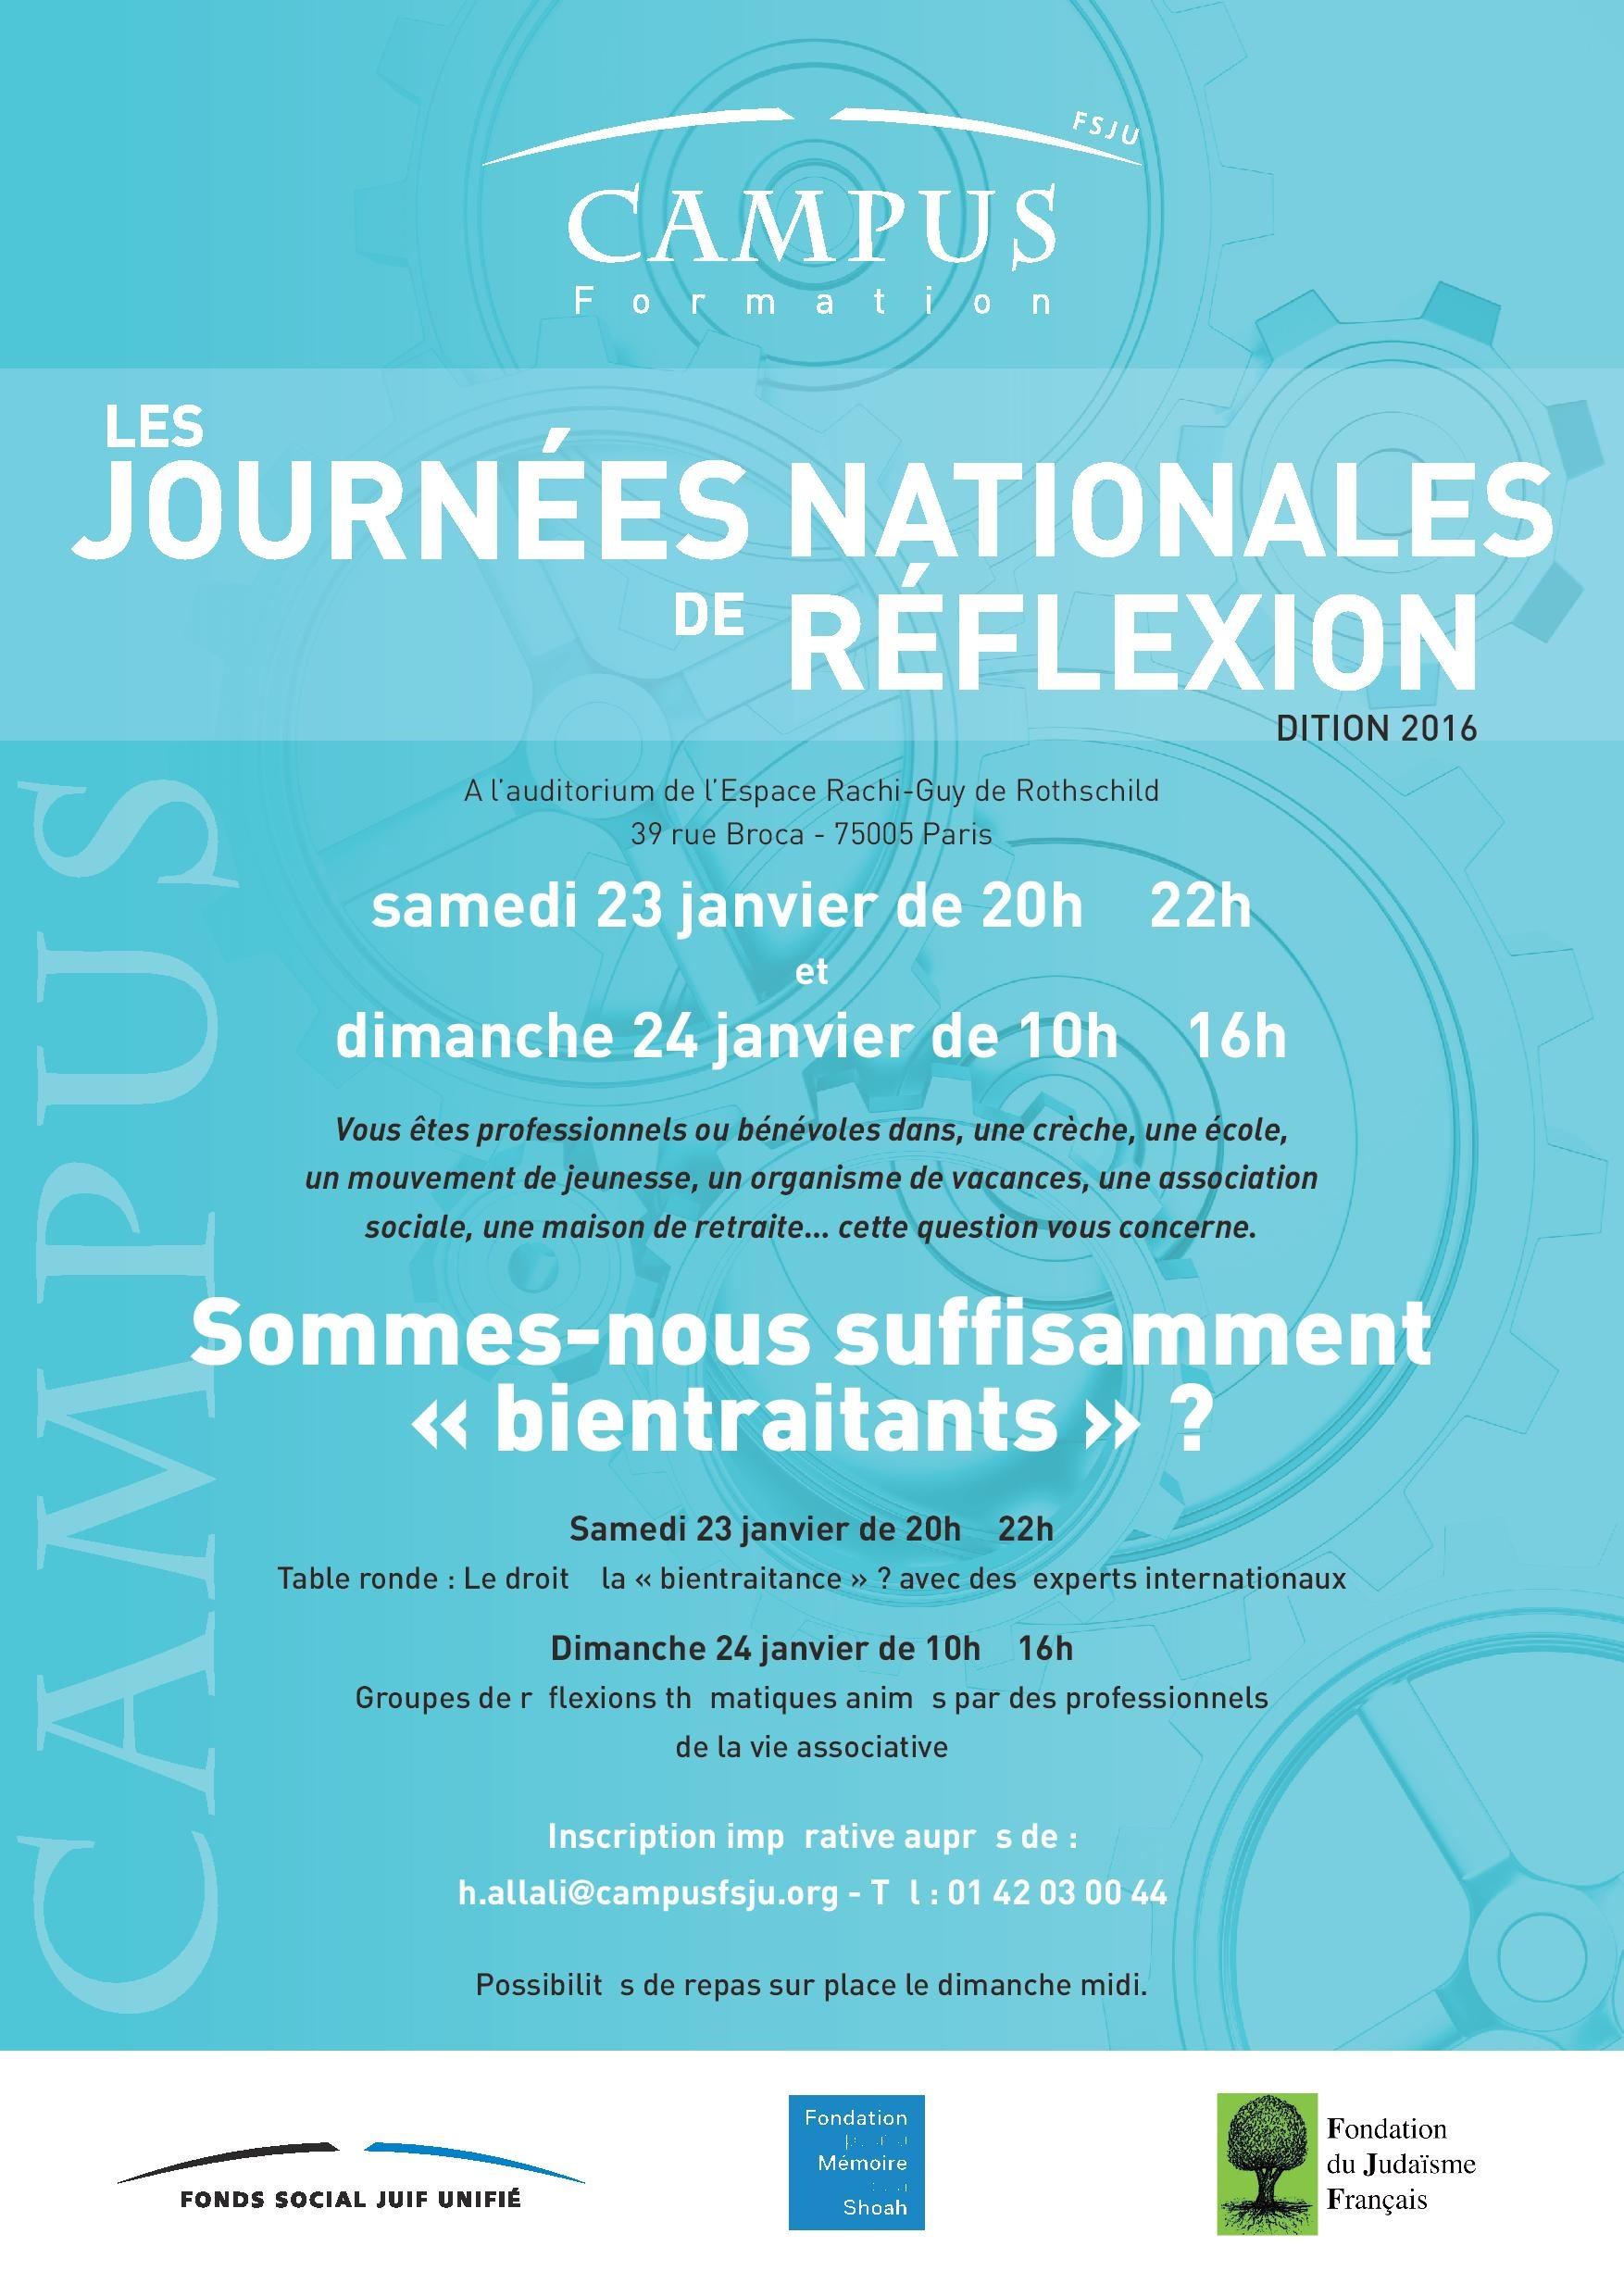 Sommes-nous suffisamment